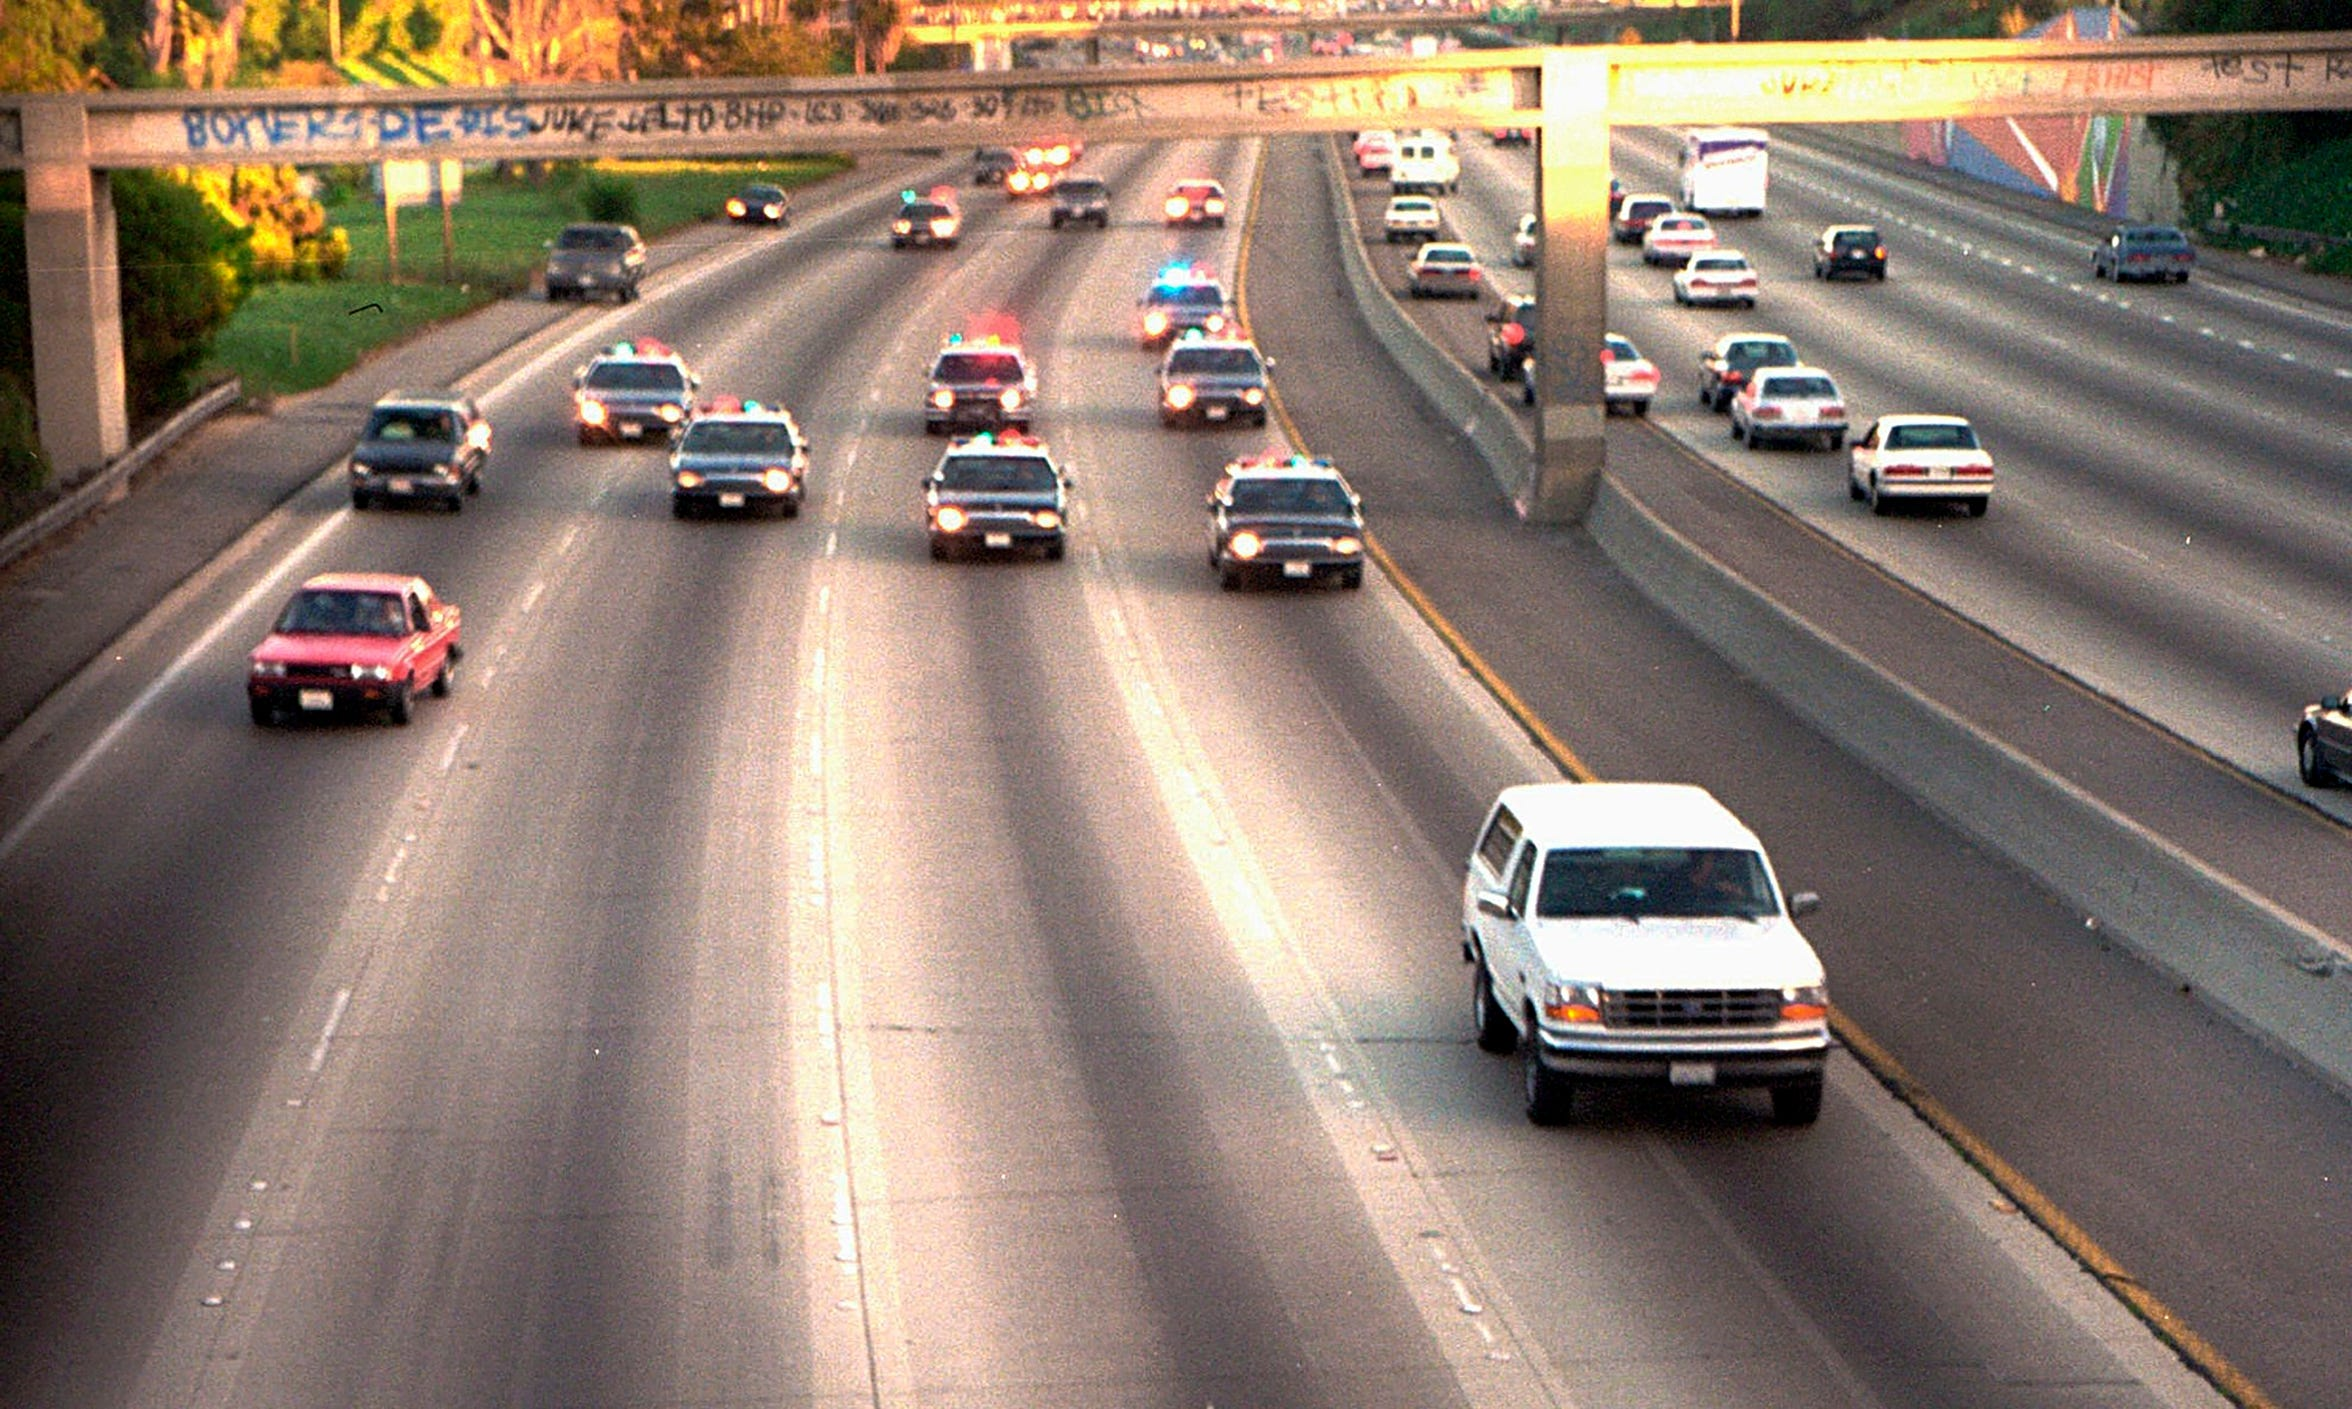 In this June 17, 1994, file photo, a white Ford Bronco, driven by Al Cowlings carrying O.J. Simpson, is trailed by Los Angeles police cars as it travels on a freeway in Los Angeles.